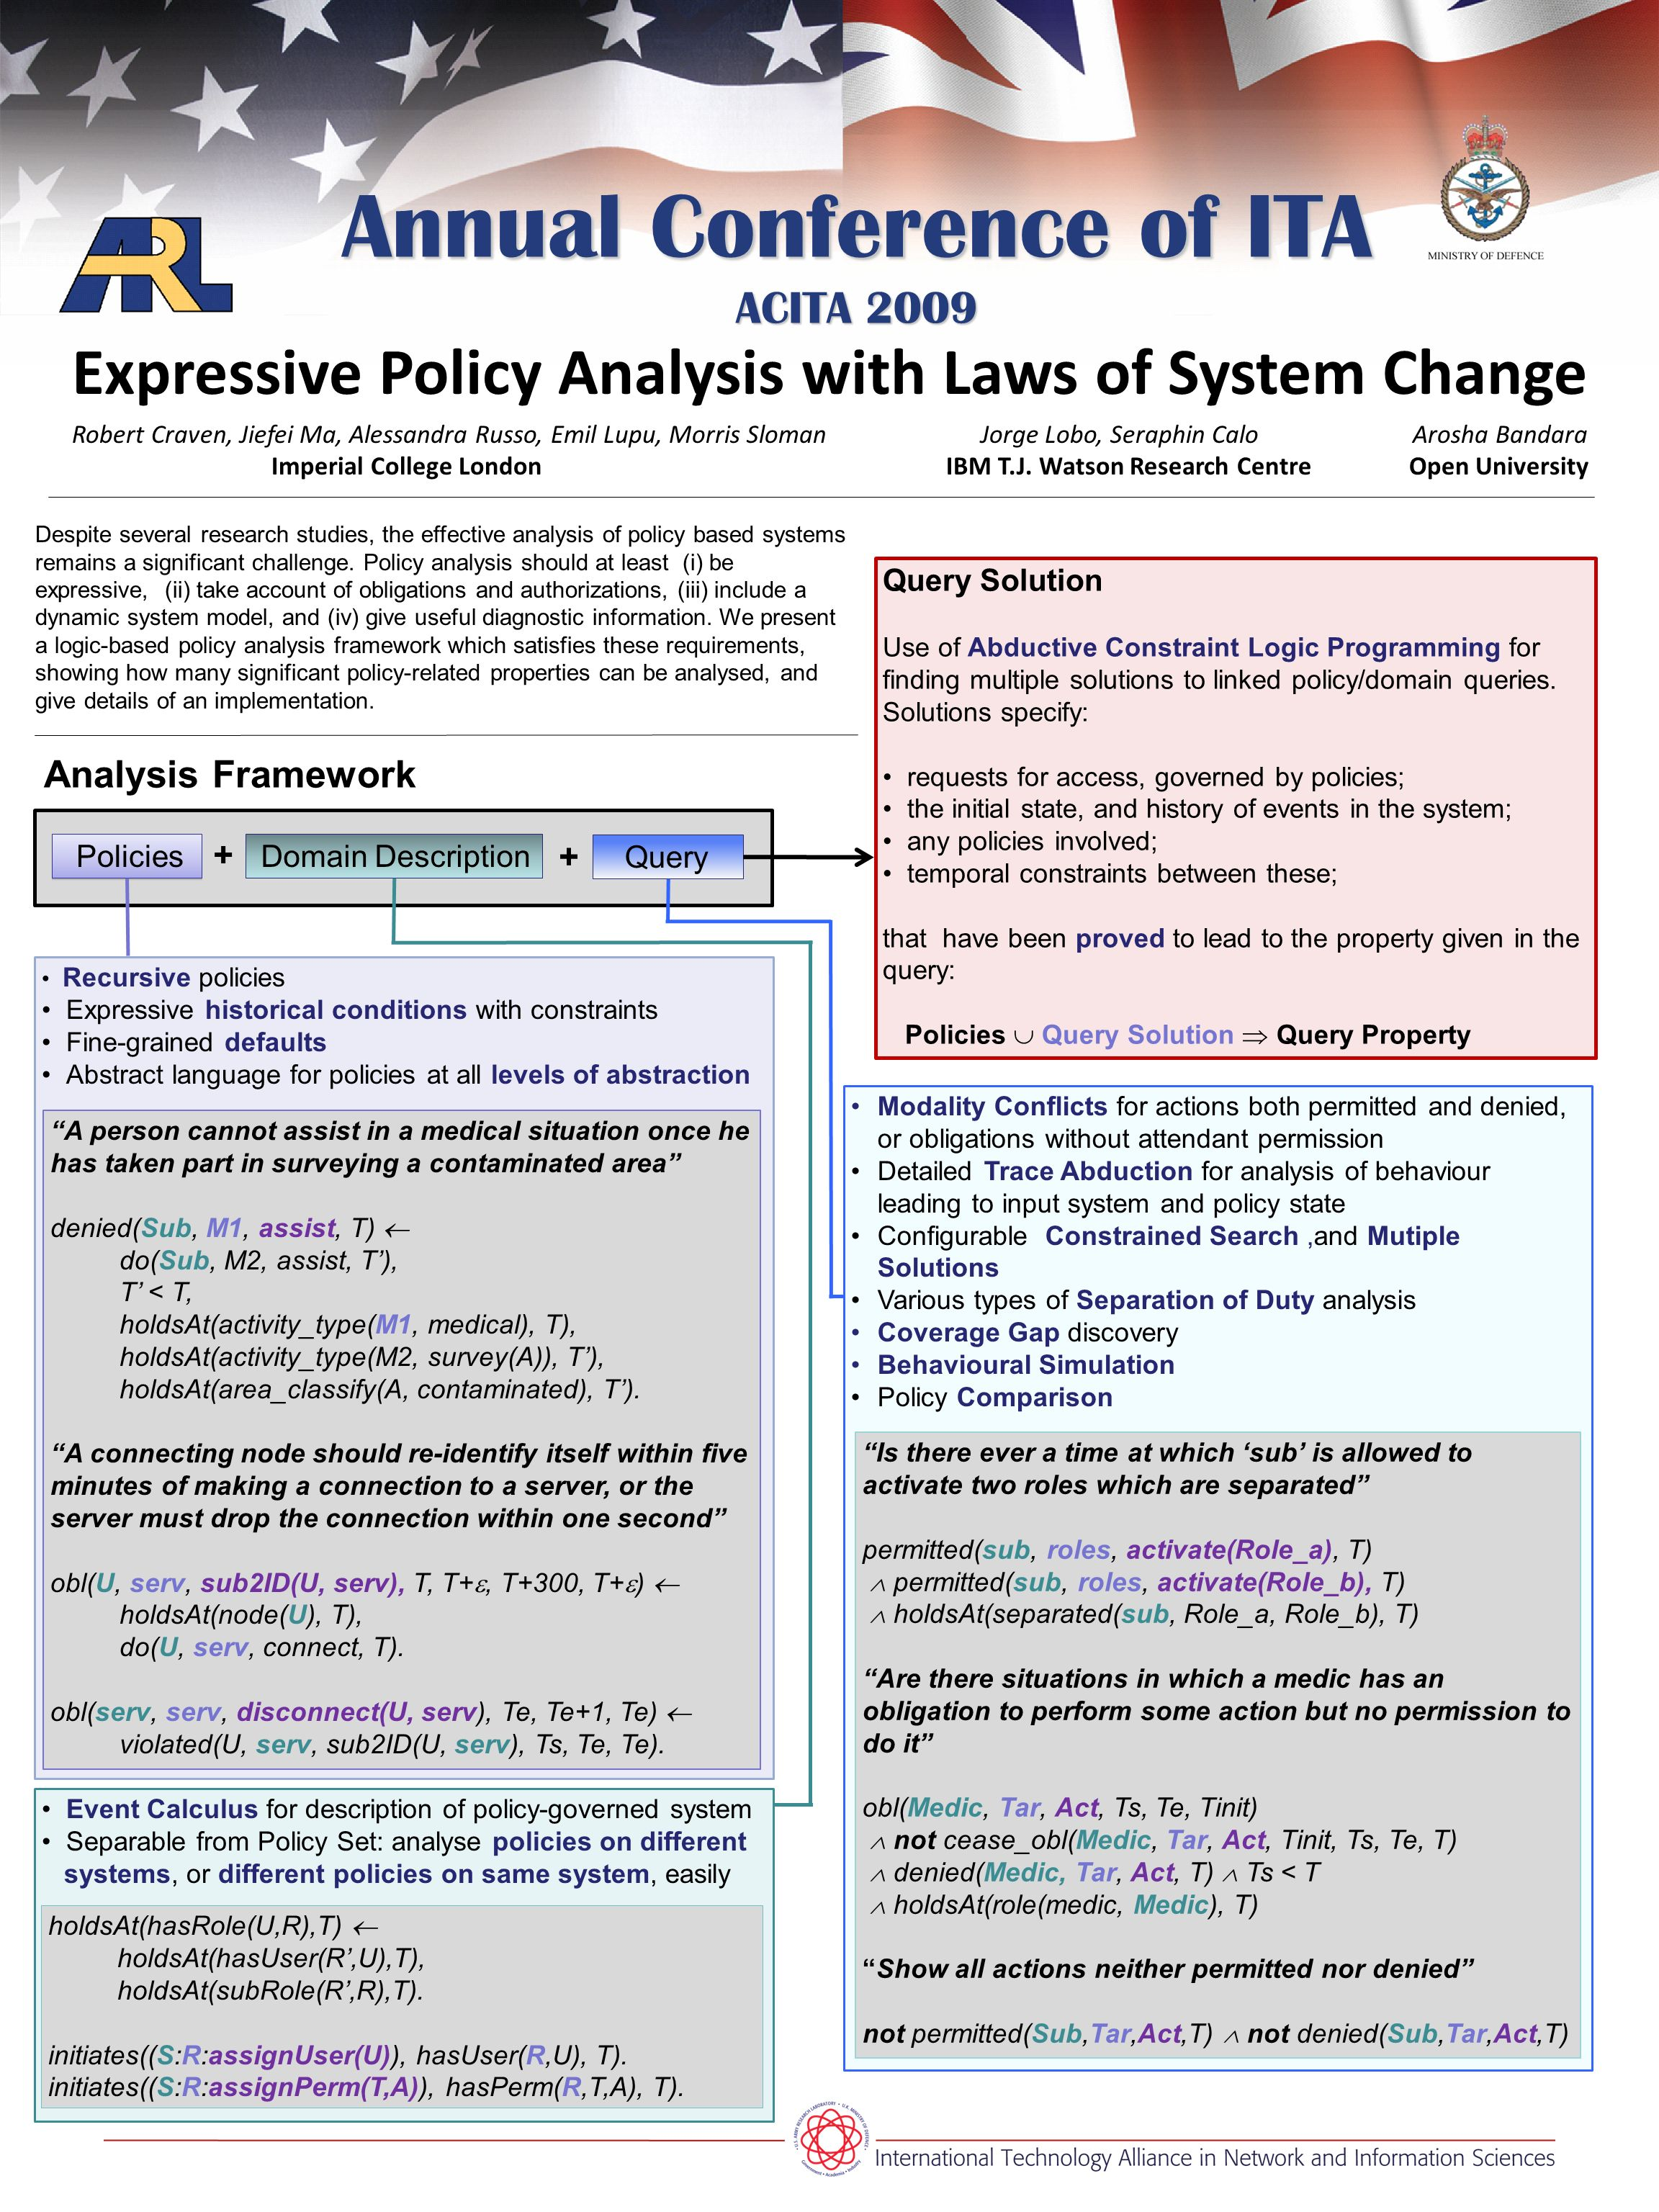 Recursive policies Expressive historical conditions with constraints Fine-grained defaults Abstract language for policies at all levels of abstraction Annual Conference of ITA ACITA 2009 Expressive Policy Analysis with Laws of System Change Robert Craven, Jiefei Ma, Alessandra Russo, Emil Lupu, Morris Sloman Jorge Lobo, Seraphin Calo Arosha Bandara Imperial College London IBM T.J.